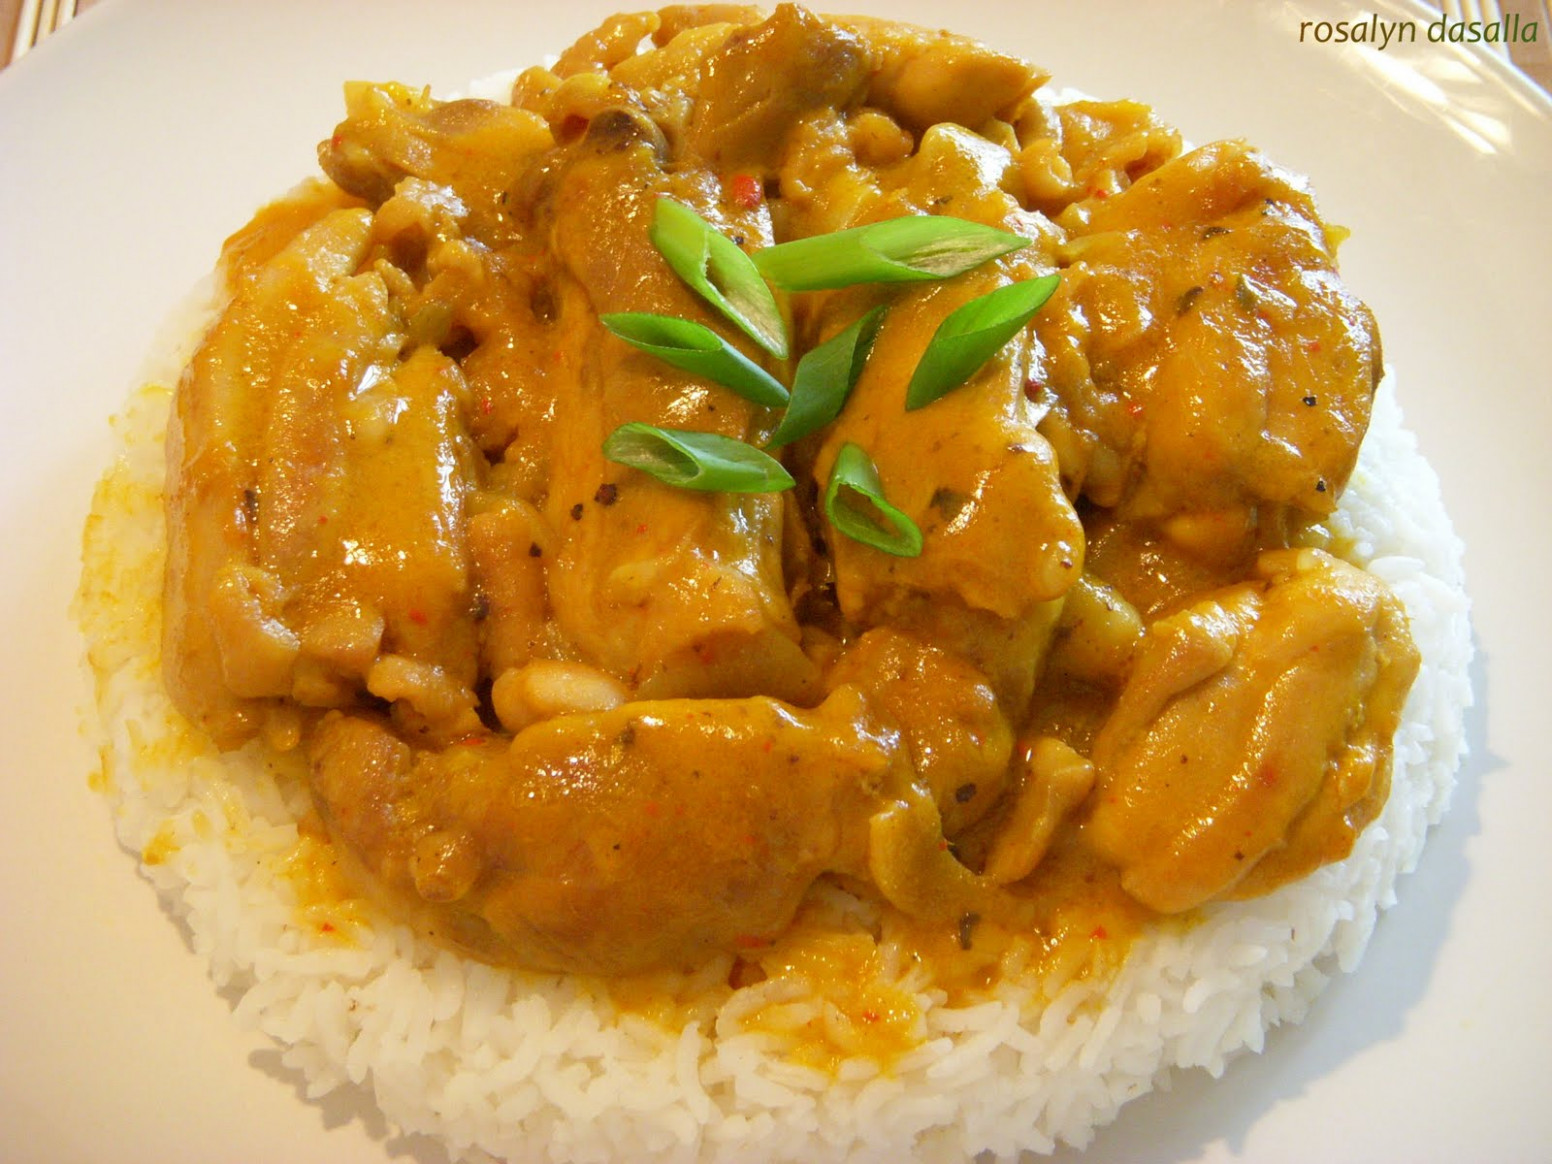 Eats O' India: Chicken Curry - Recipes Of Chicken Curry